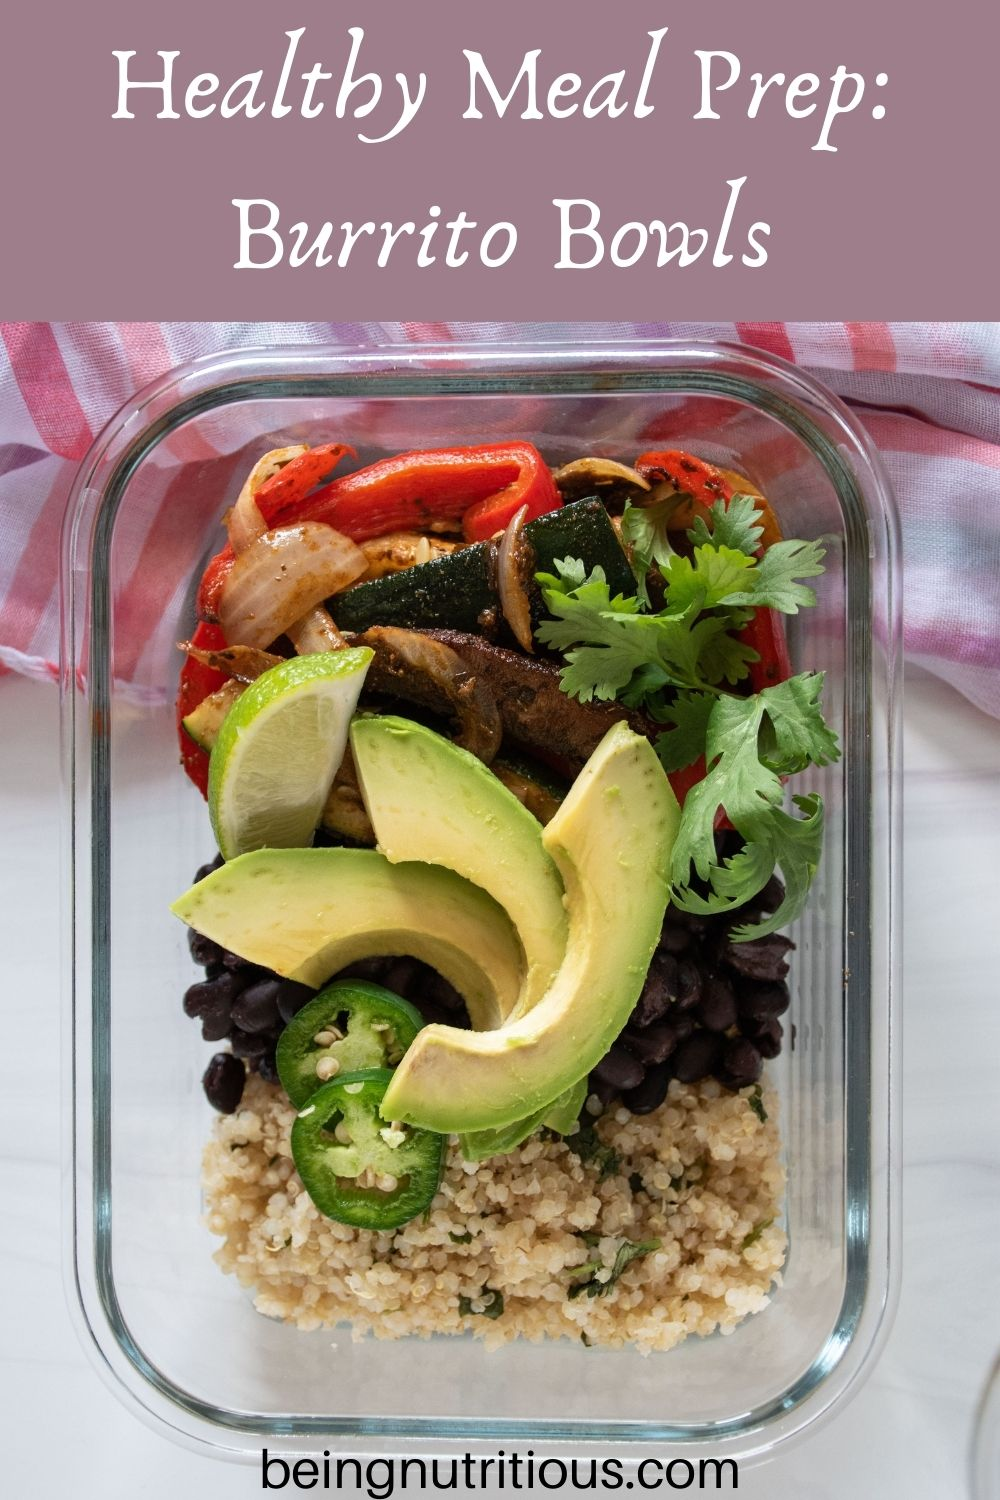 Glass meal prep container filled with burrito fillings. Text overlay: Healthy Meal Prep Burrito Bowls.